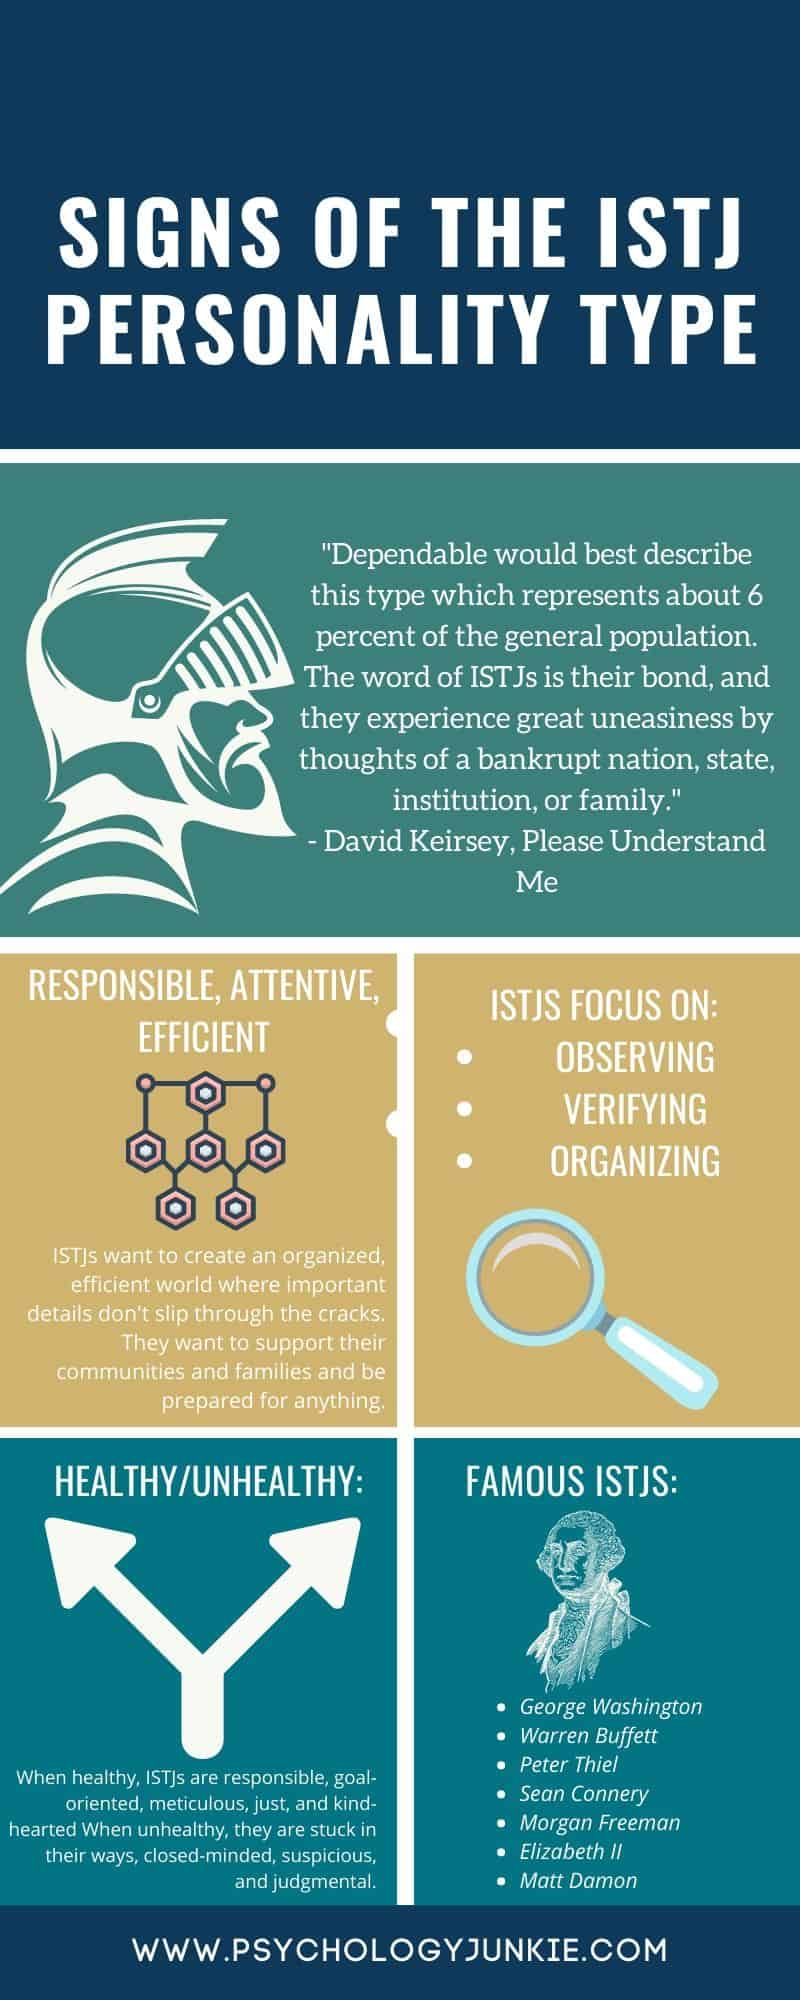 Get an in-depth look at what it really means to be an #ISTJ in the Myers-Briggs® system. #MBTI #Personality